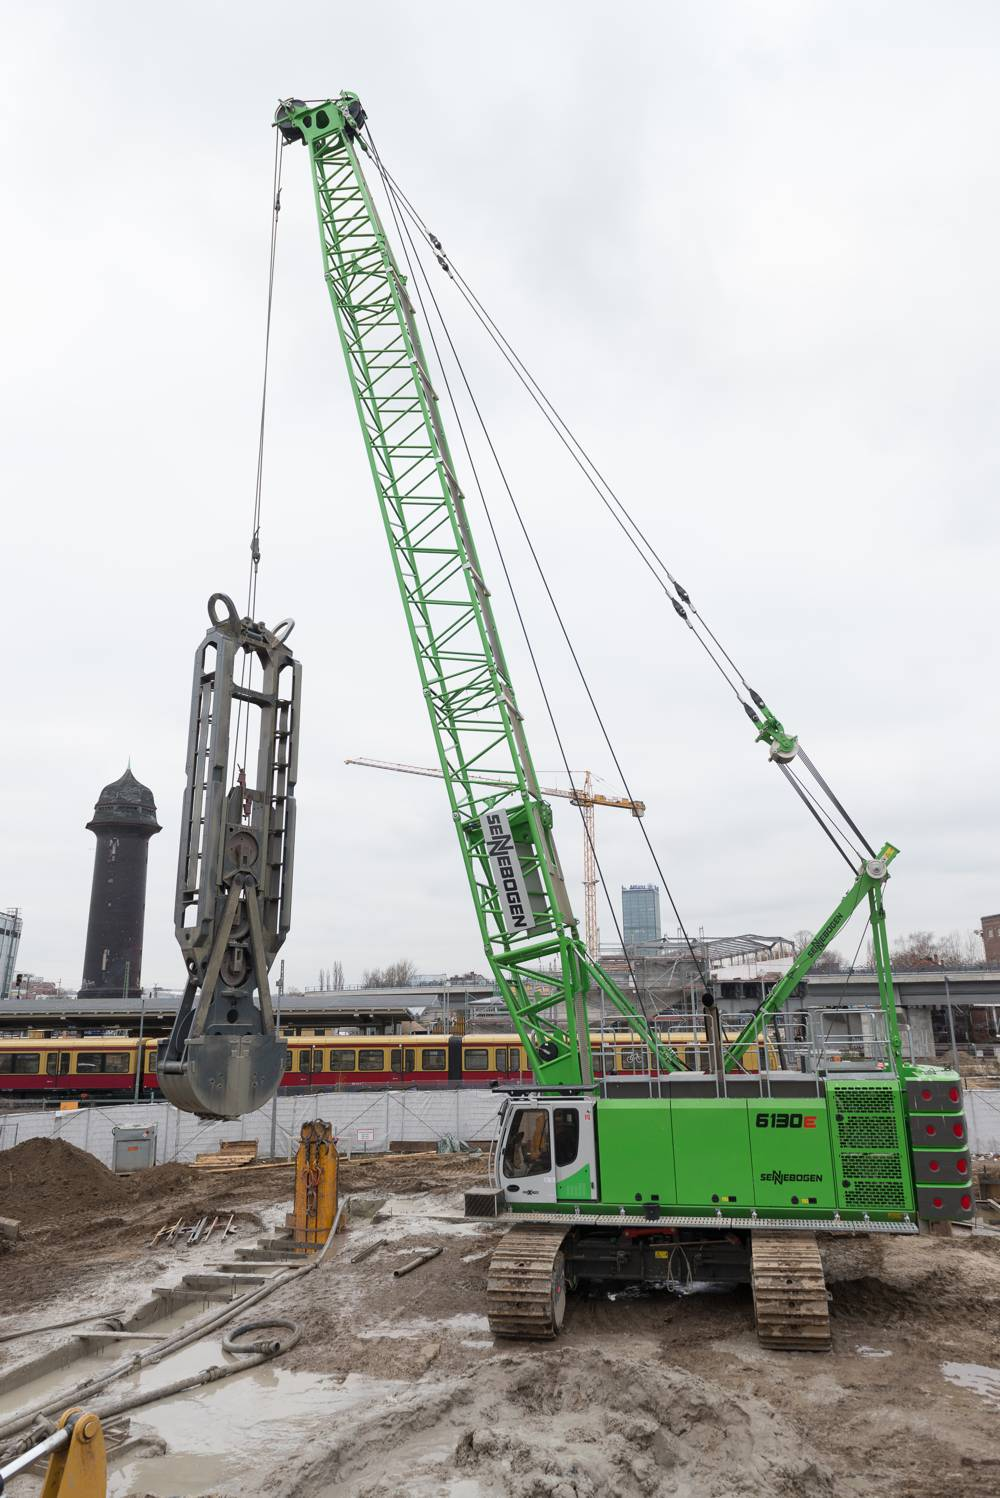 Implementation of a total of two SENNEBOGEN duty cycle cranes in diaphragm wall operations: in Berlin, foundation works are being carried out at depths of up to 25 m.